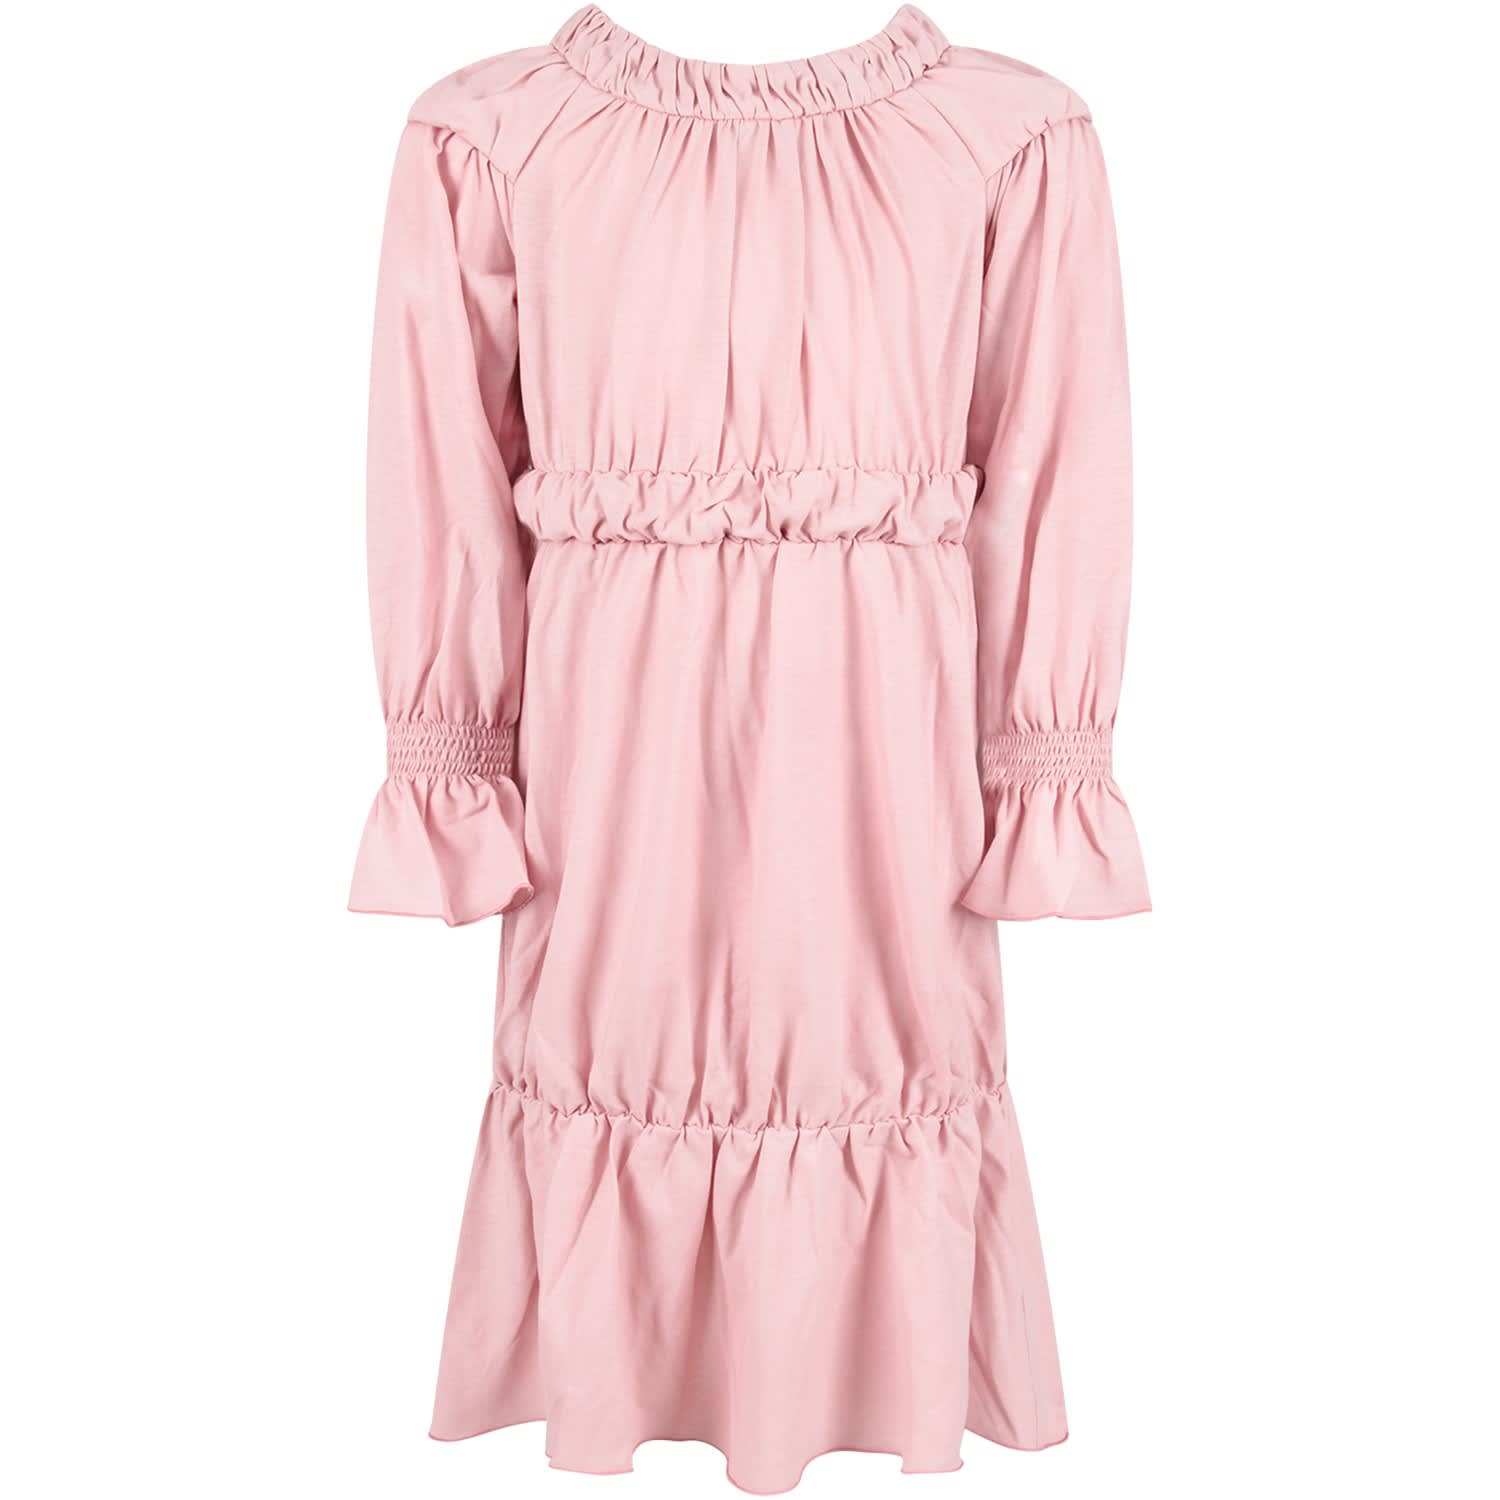 Owa Yurika Pink chloe Girl Dress